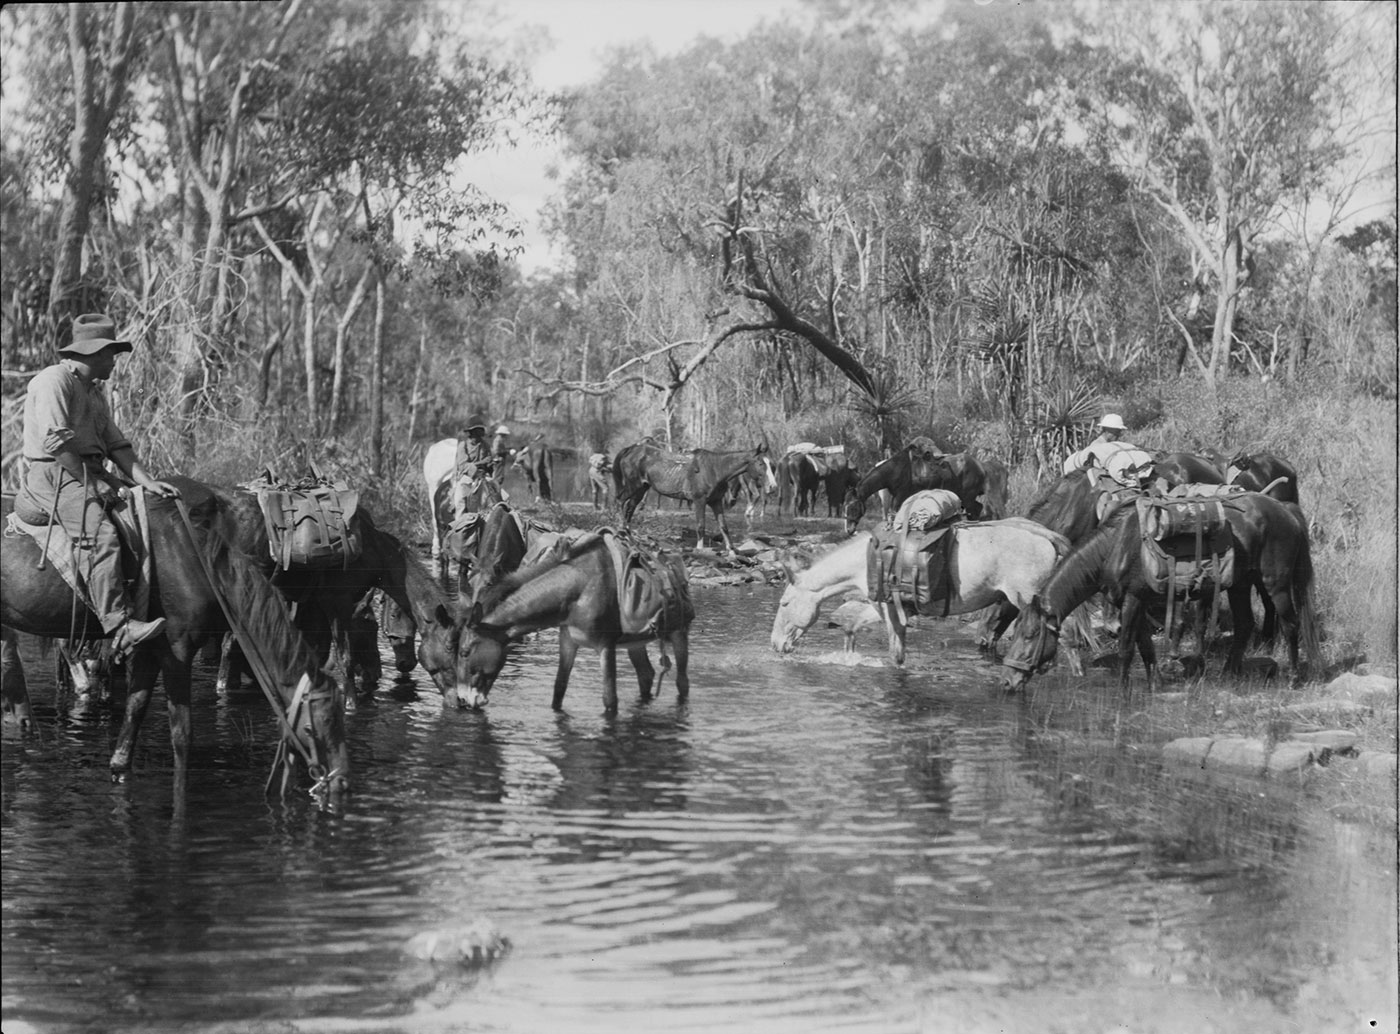 Black and white photograph of horses drinking from a shallow waterway, with scrub on either side. Two horses bear riders and several other men stand beside horses in the background. Most of the horses have pack saddles. - click to view larger image